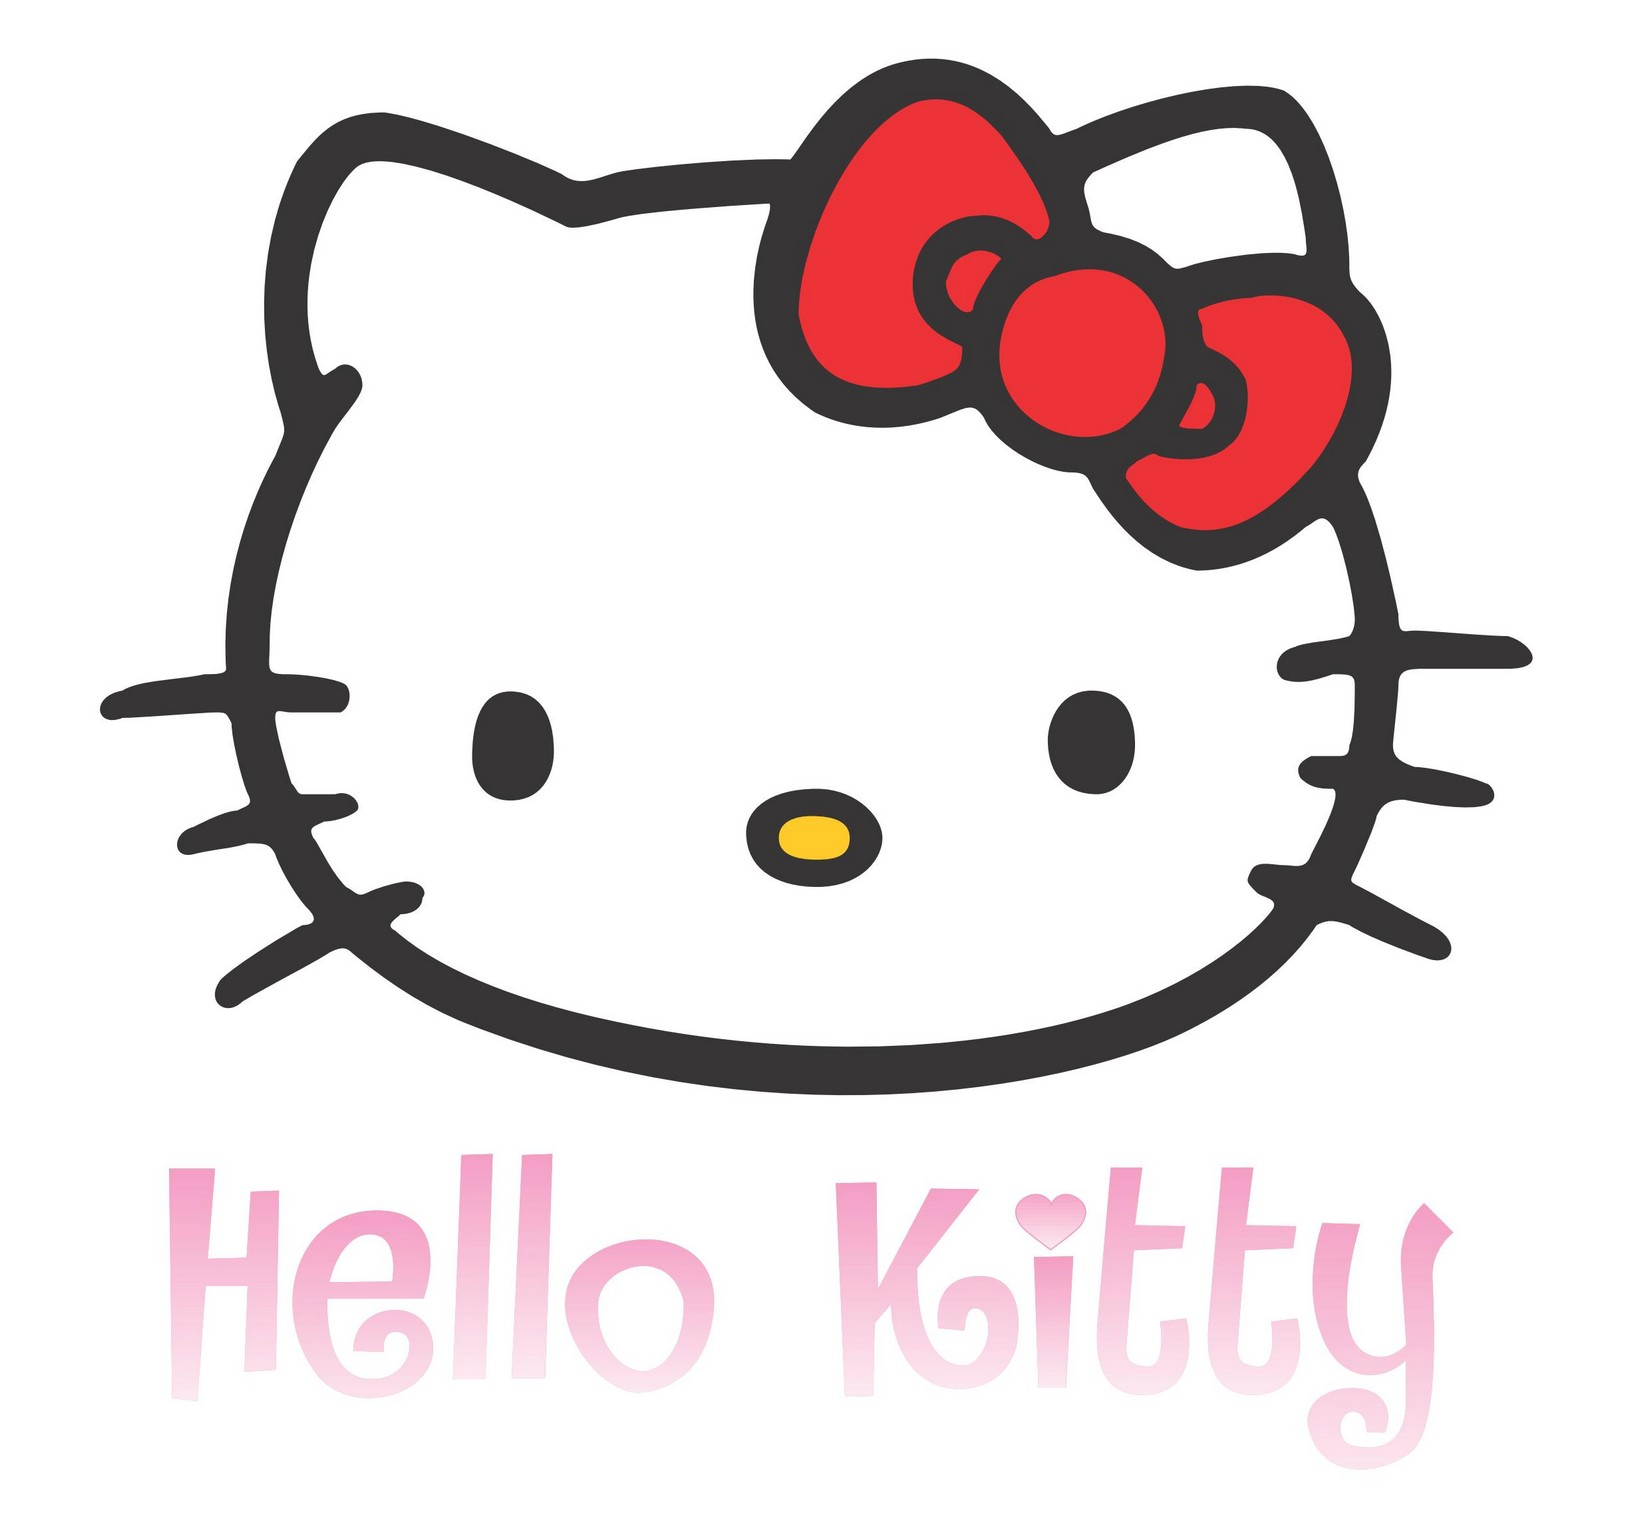 Hello kitty logo Wallpaper